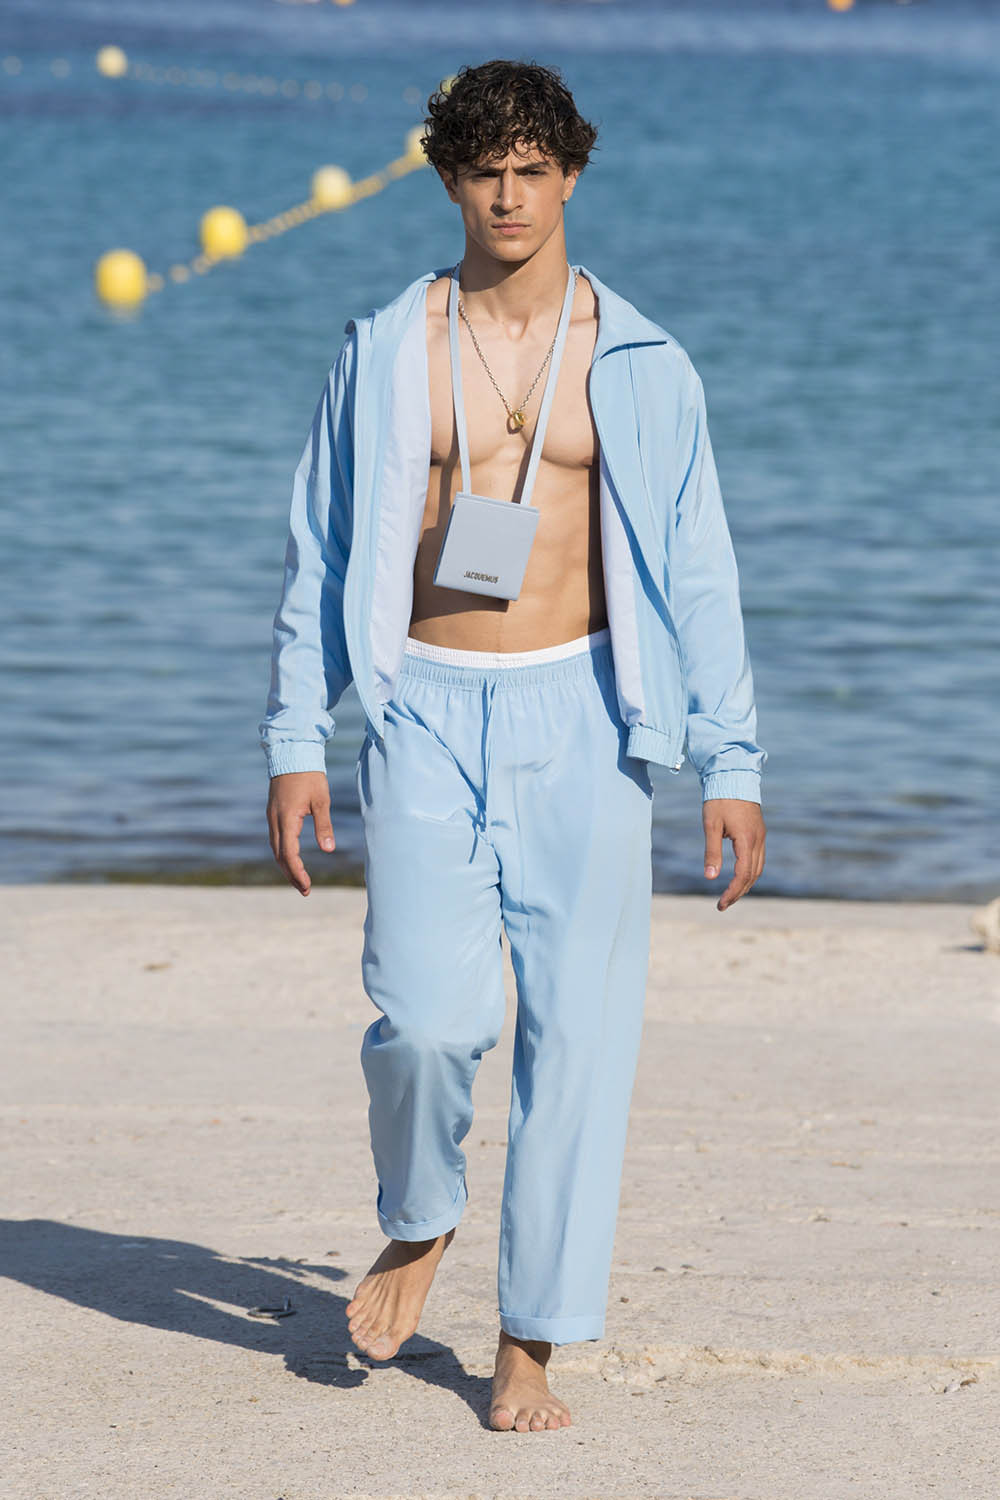 Jacquemus Paris Fashion Week Men's SS19 - Sagaboi - Look 1